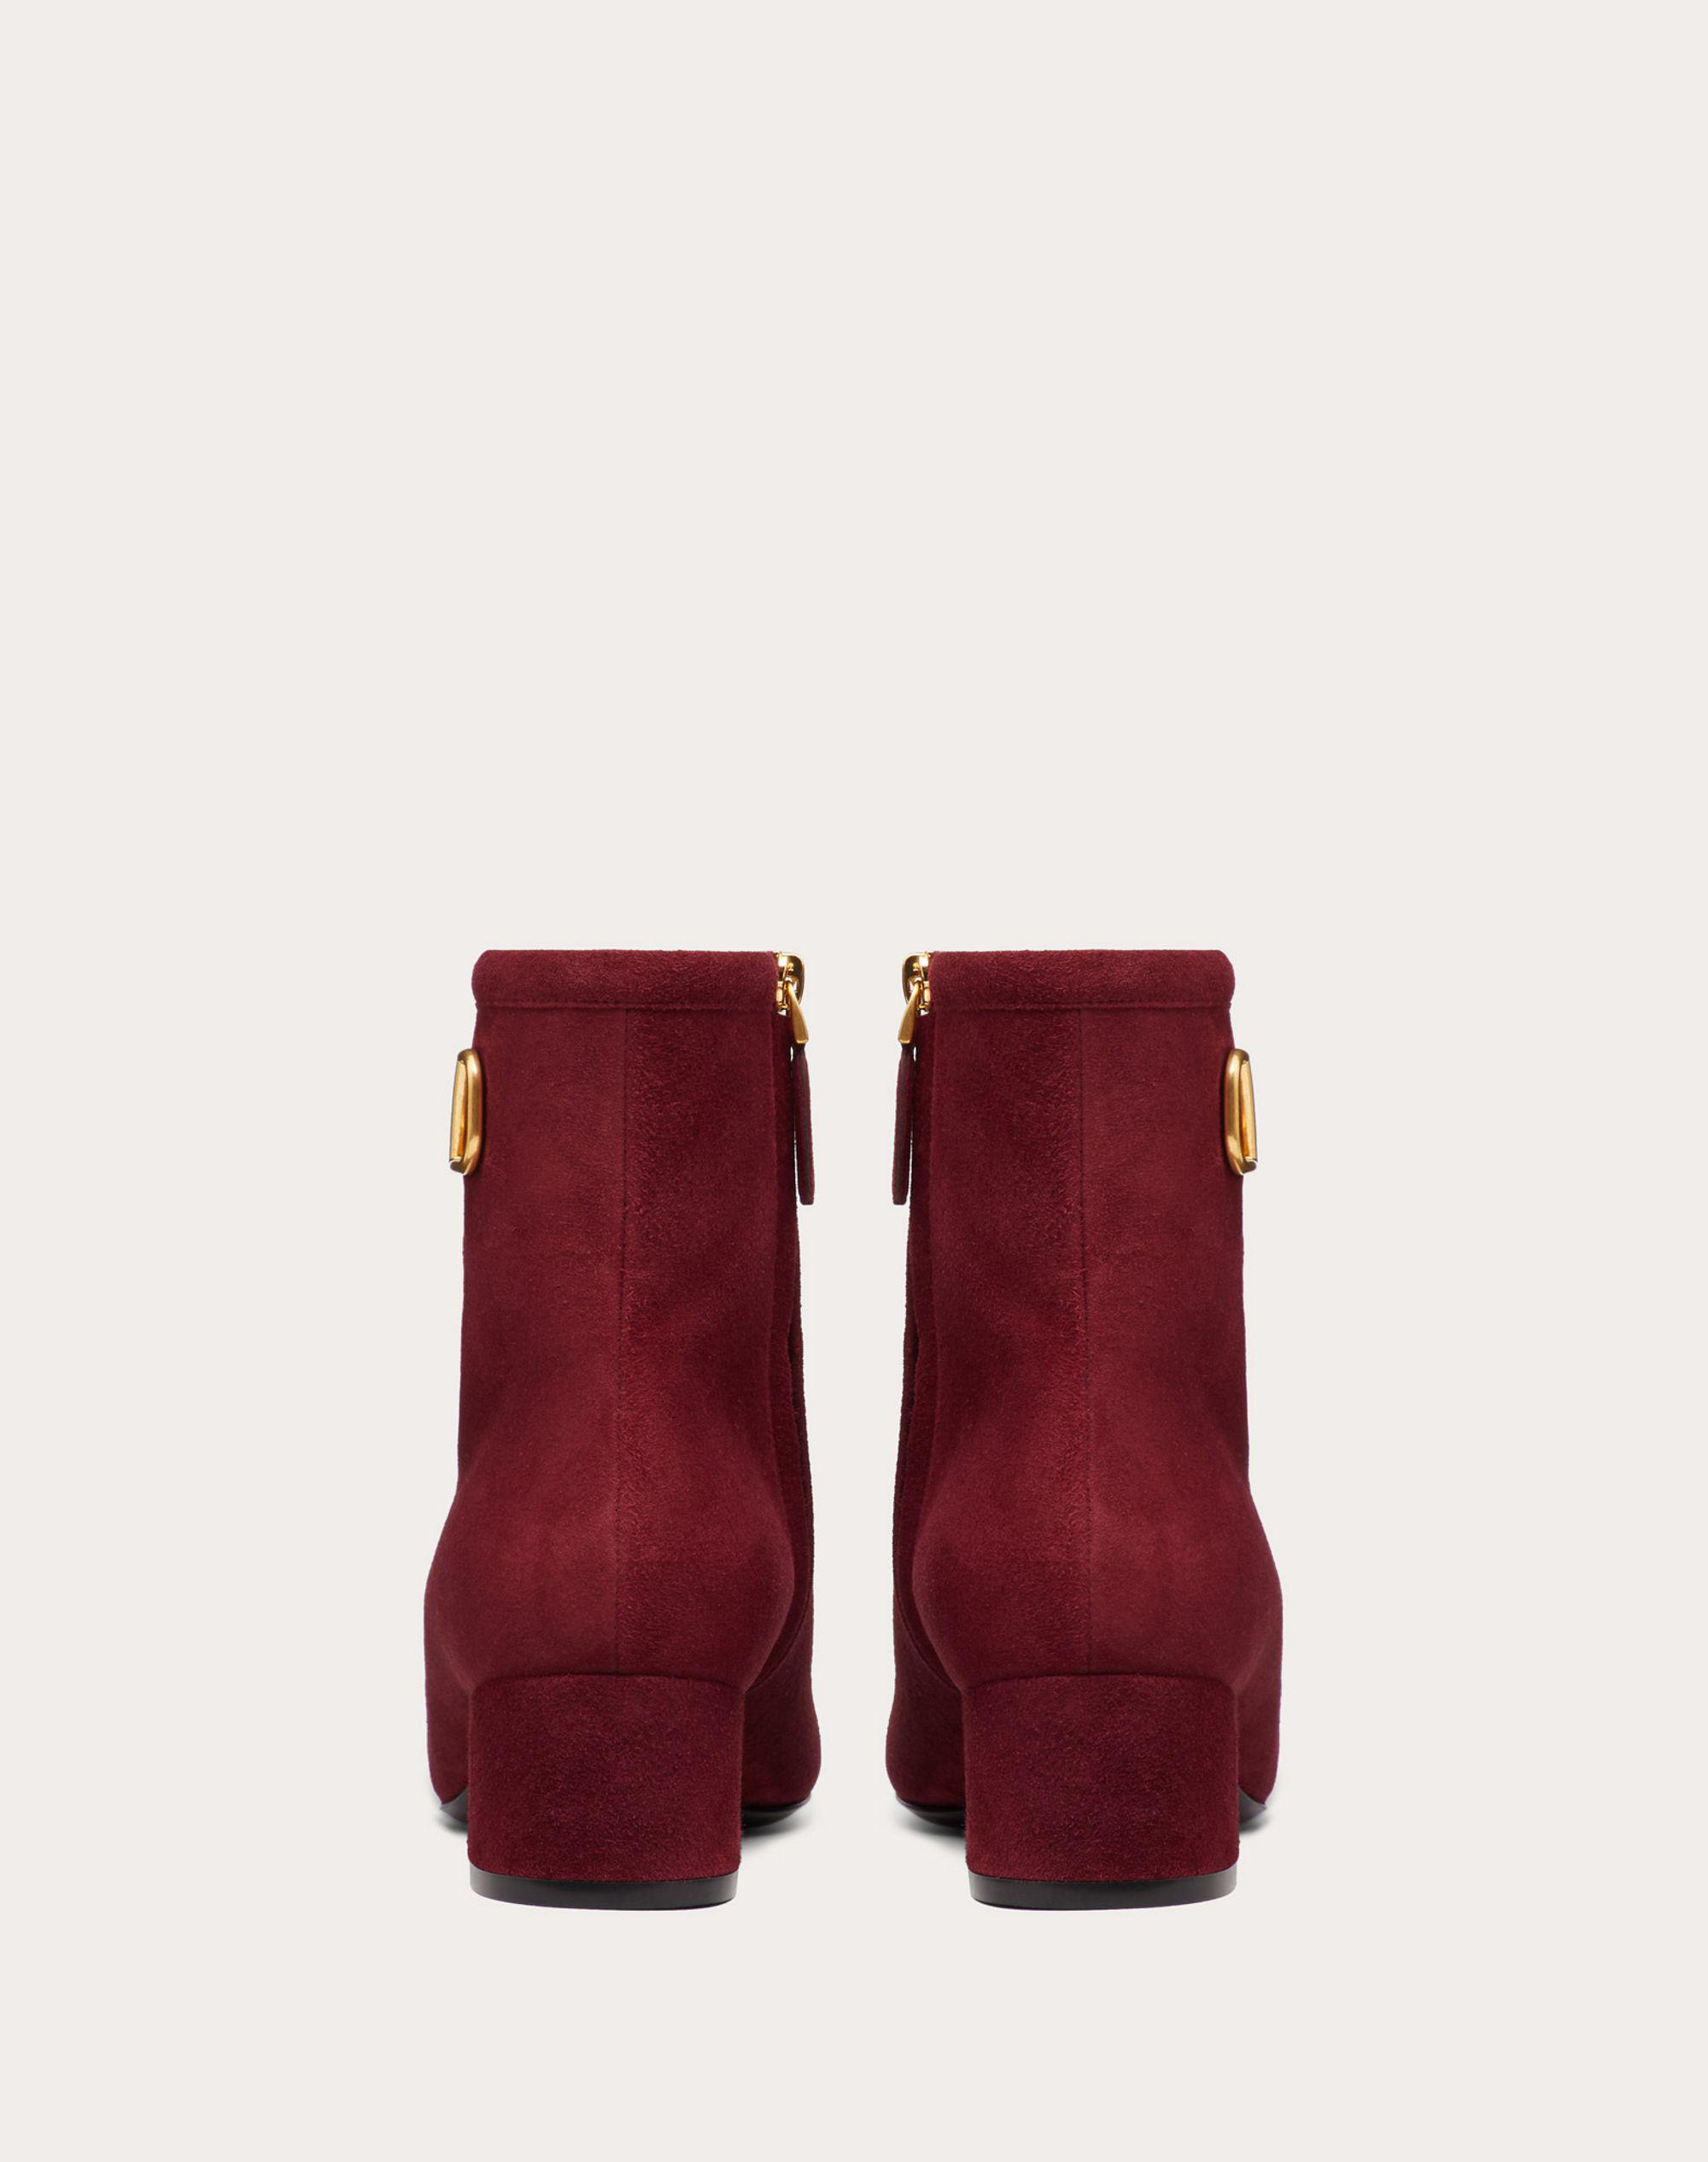 VLogo Signature Suede Ankle Boot 45 mm / 1.8 in. 2